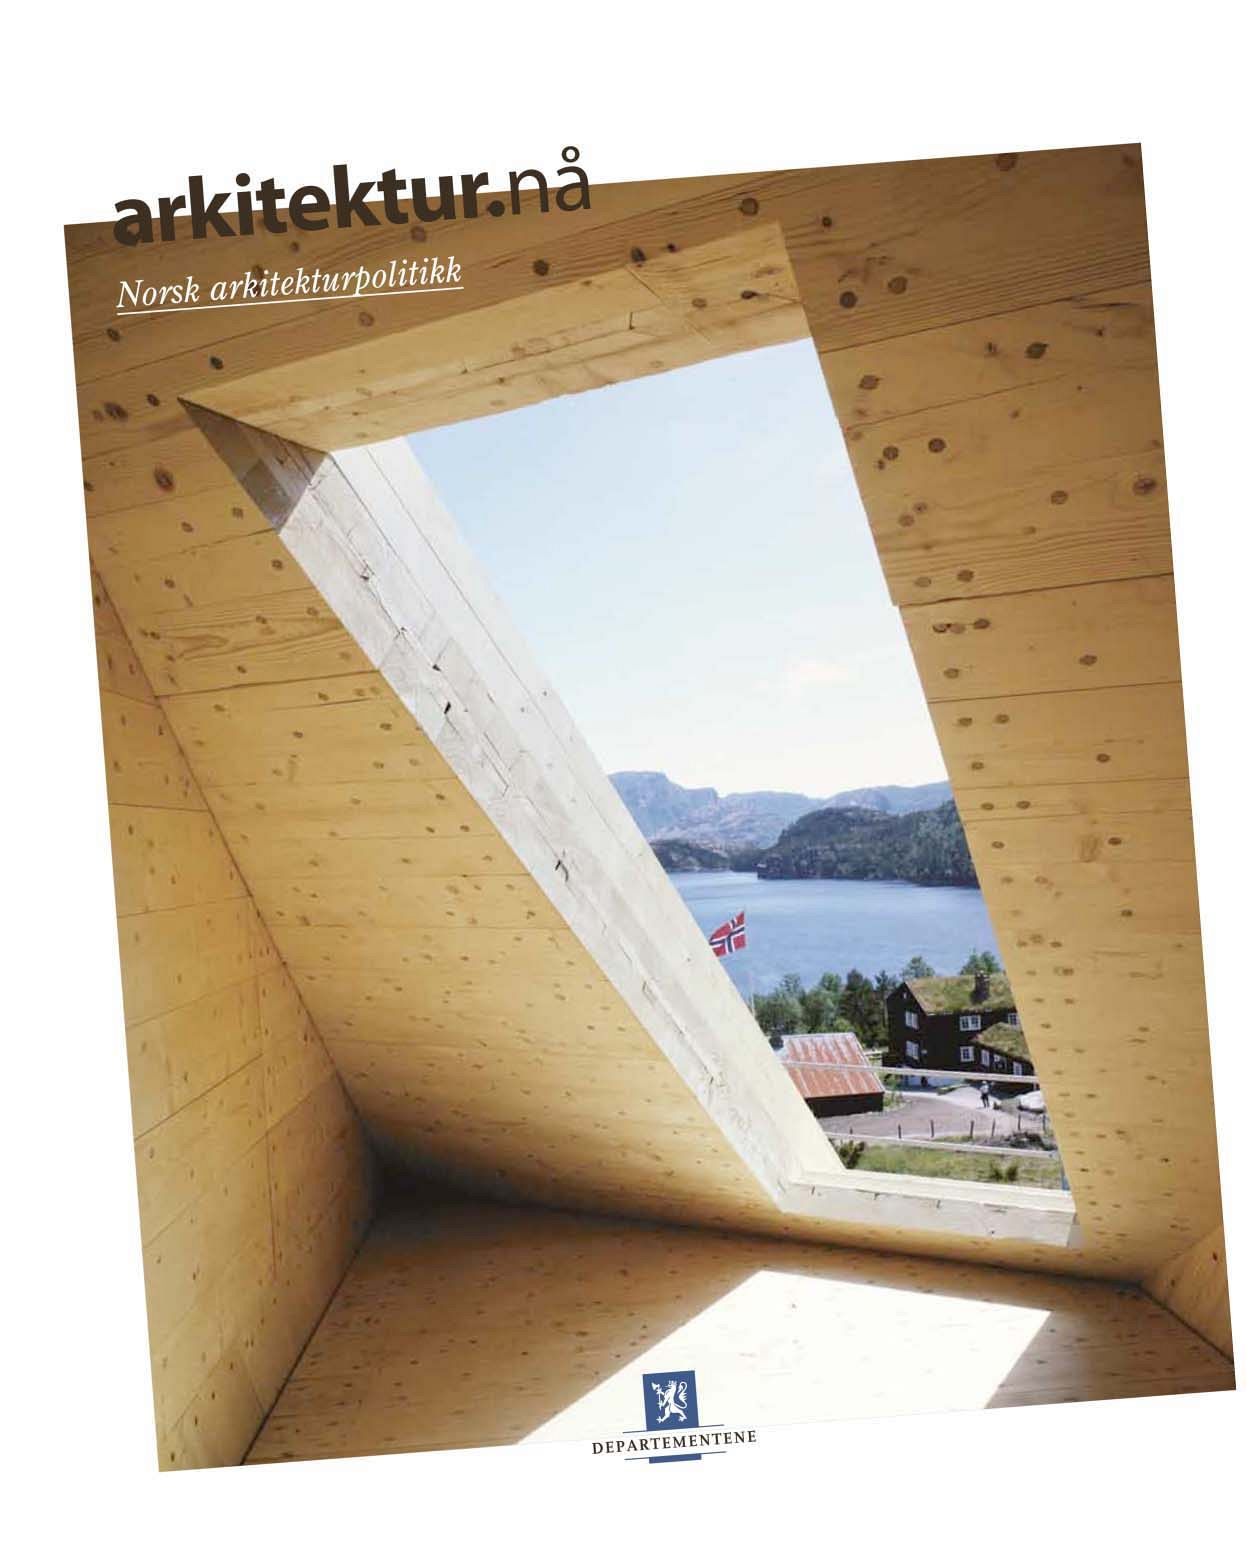 The Norwegian architectural policy, _arkitektur.nå_, from 2010.